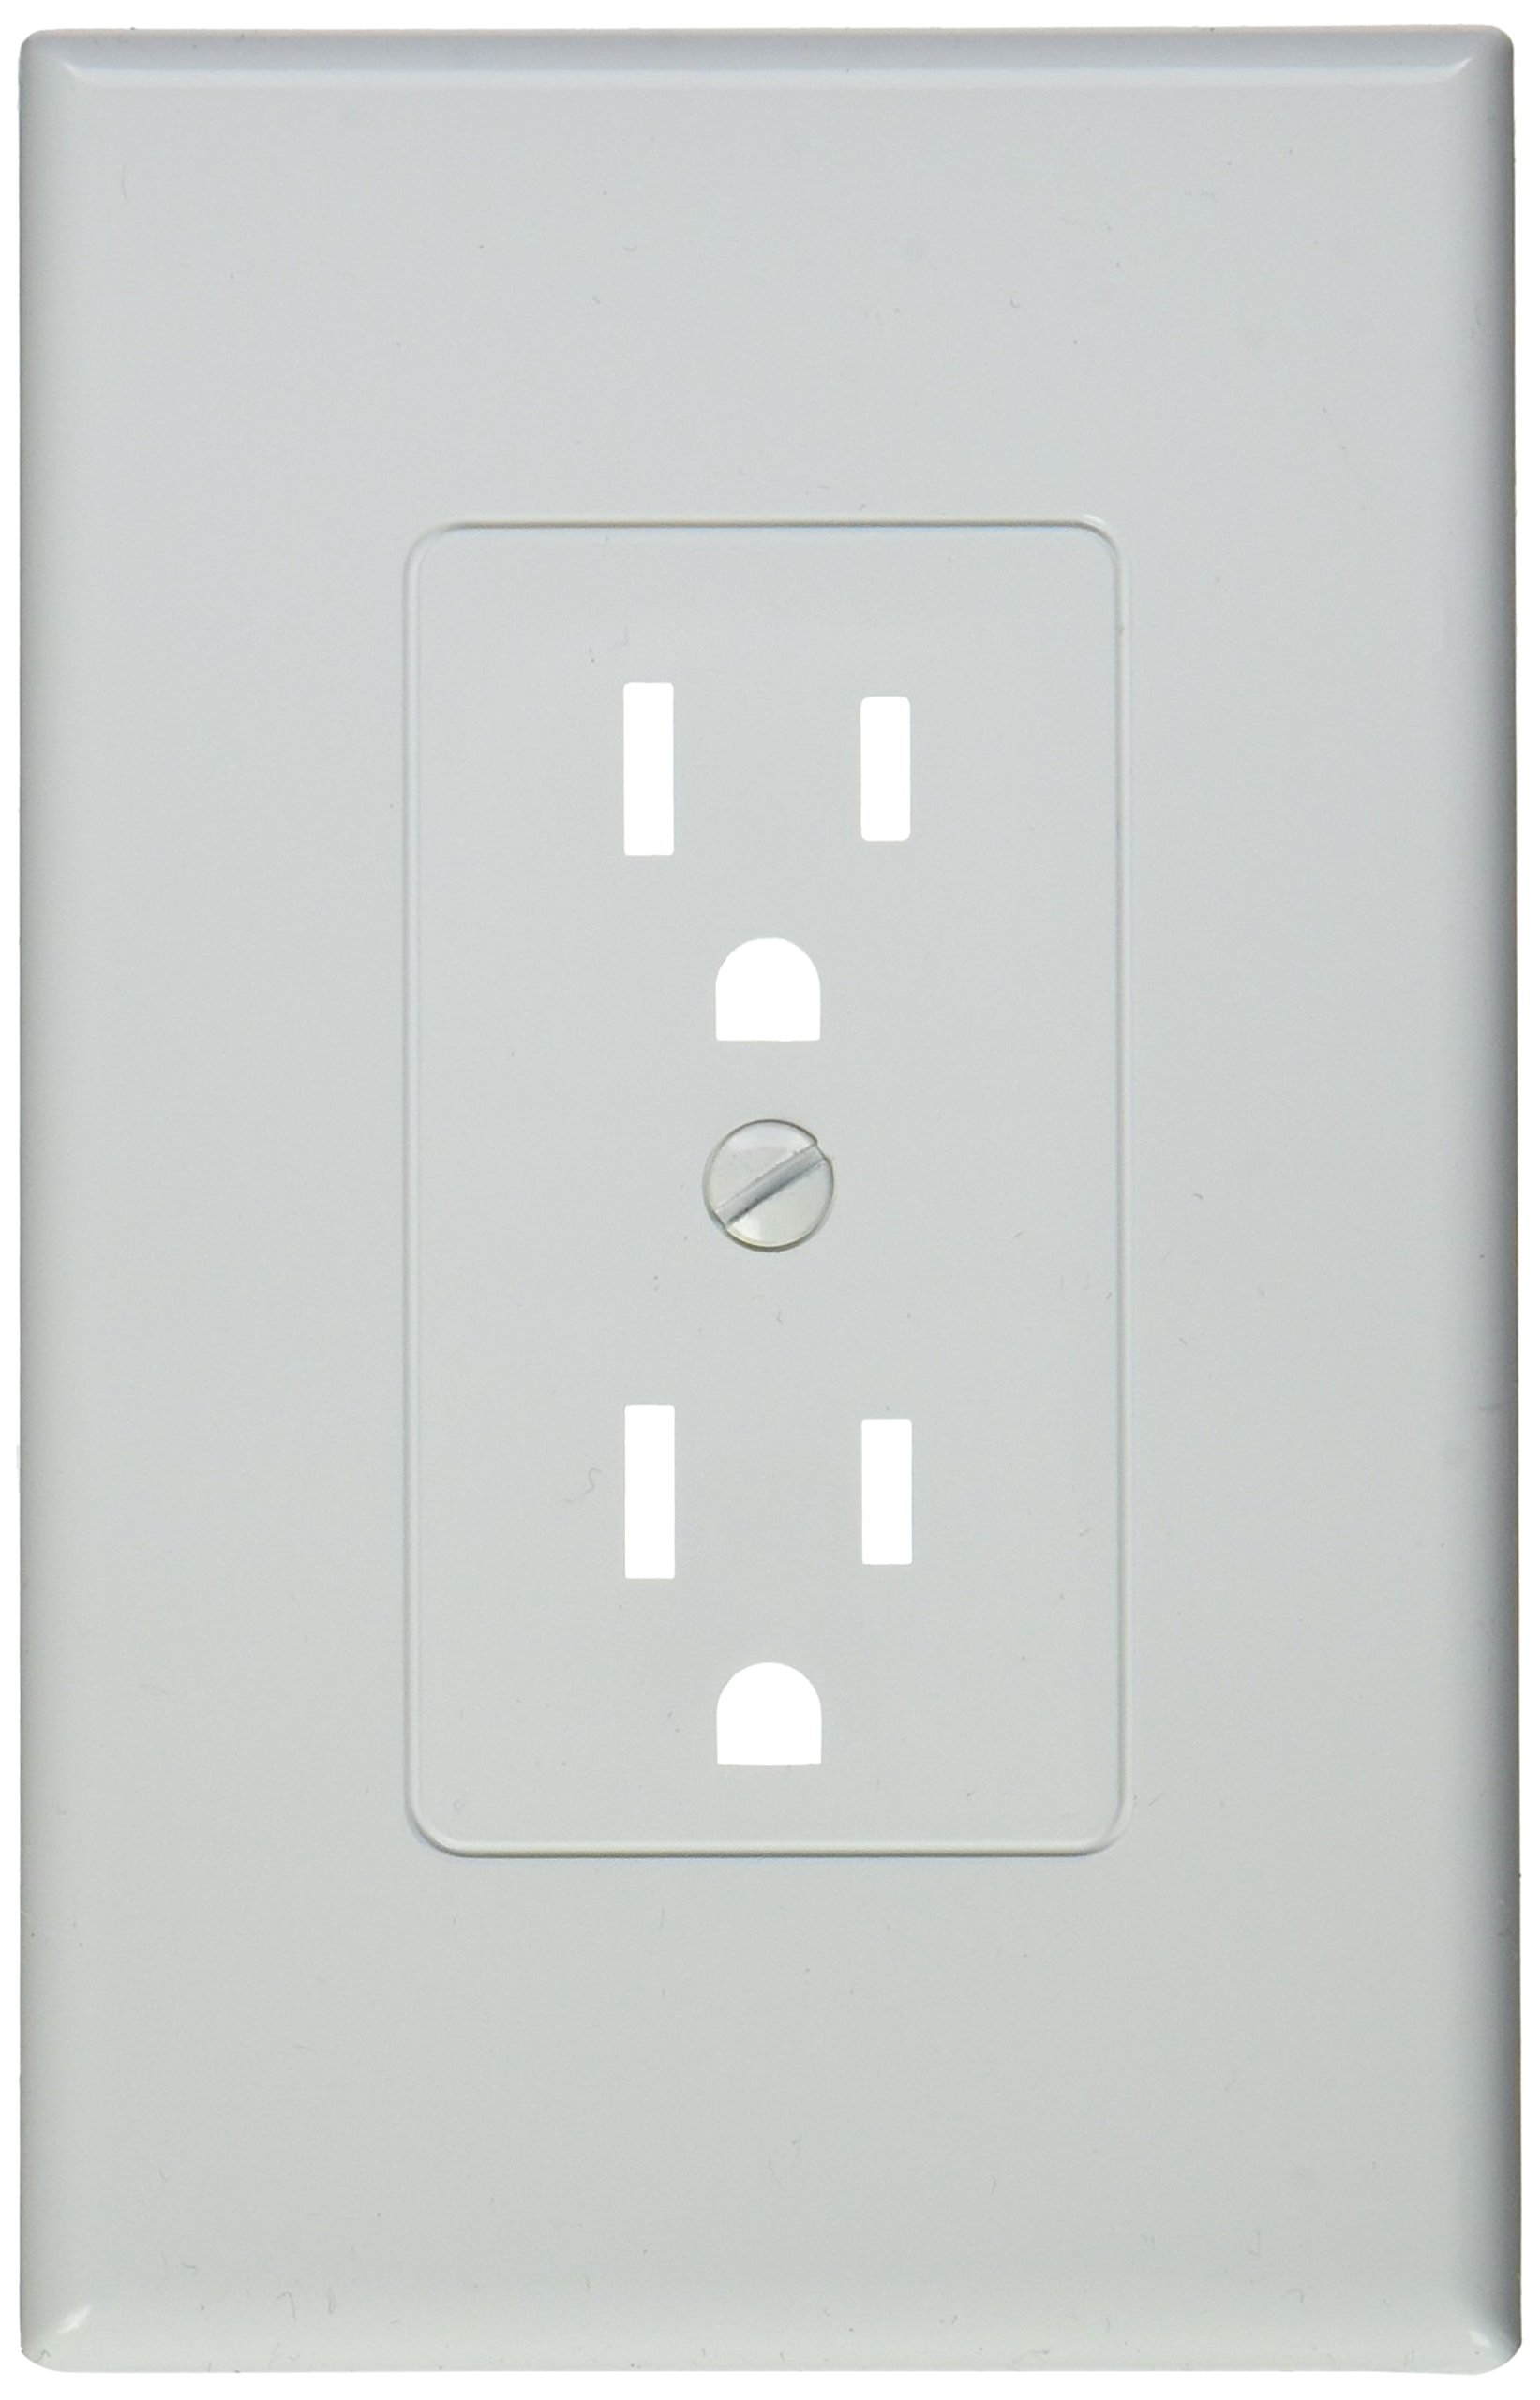 TayMac MW2500W Single-Gang Wallplate Non-Metallic Decorator Cover One Grounded Duplex, Pack of 5, White Smooth by TayMac